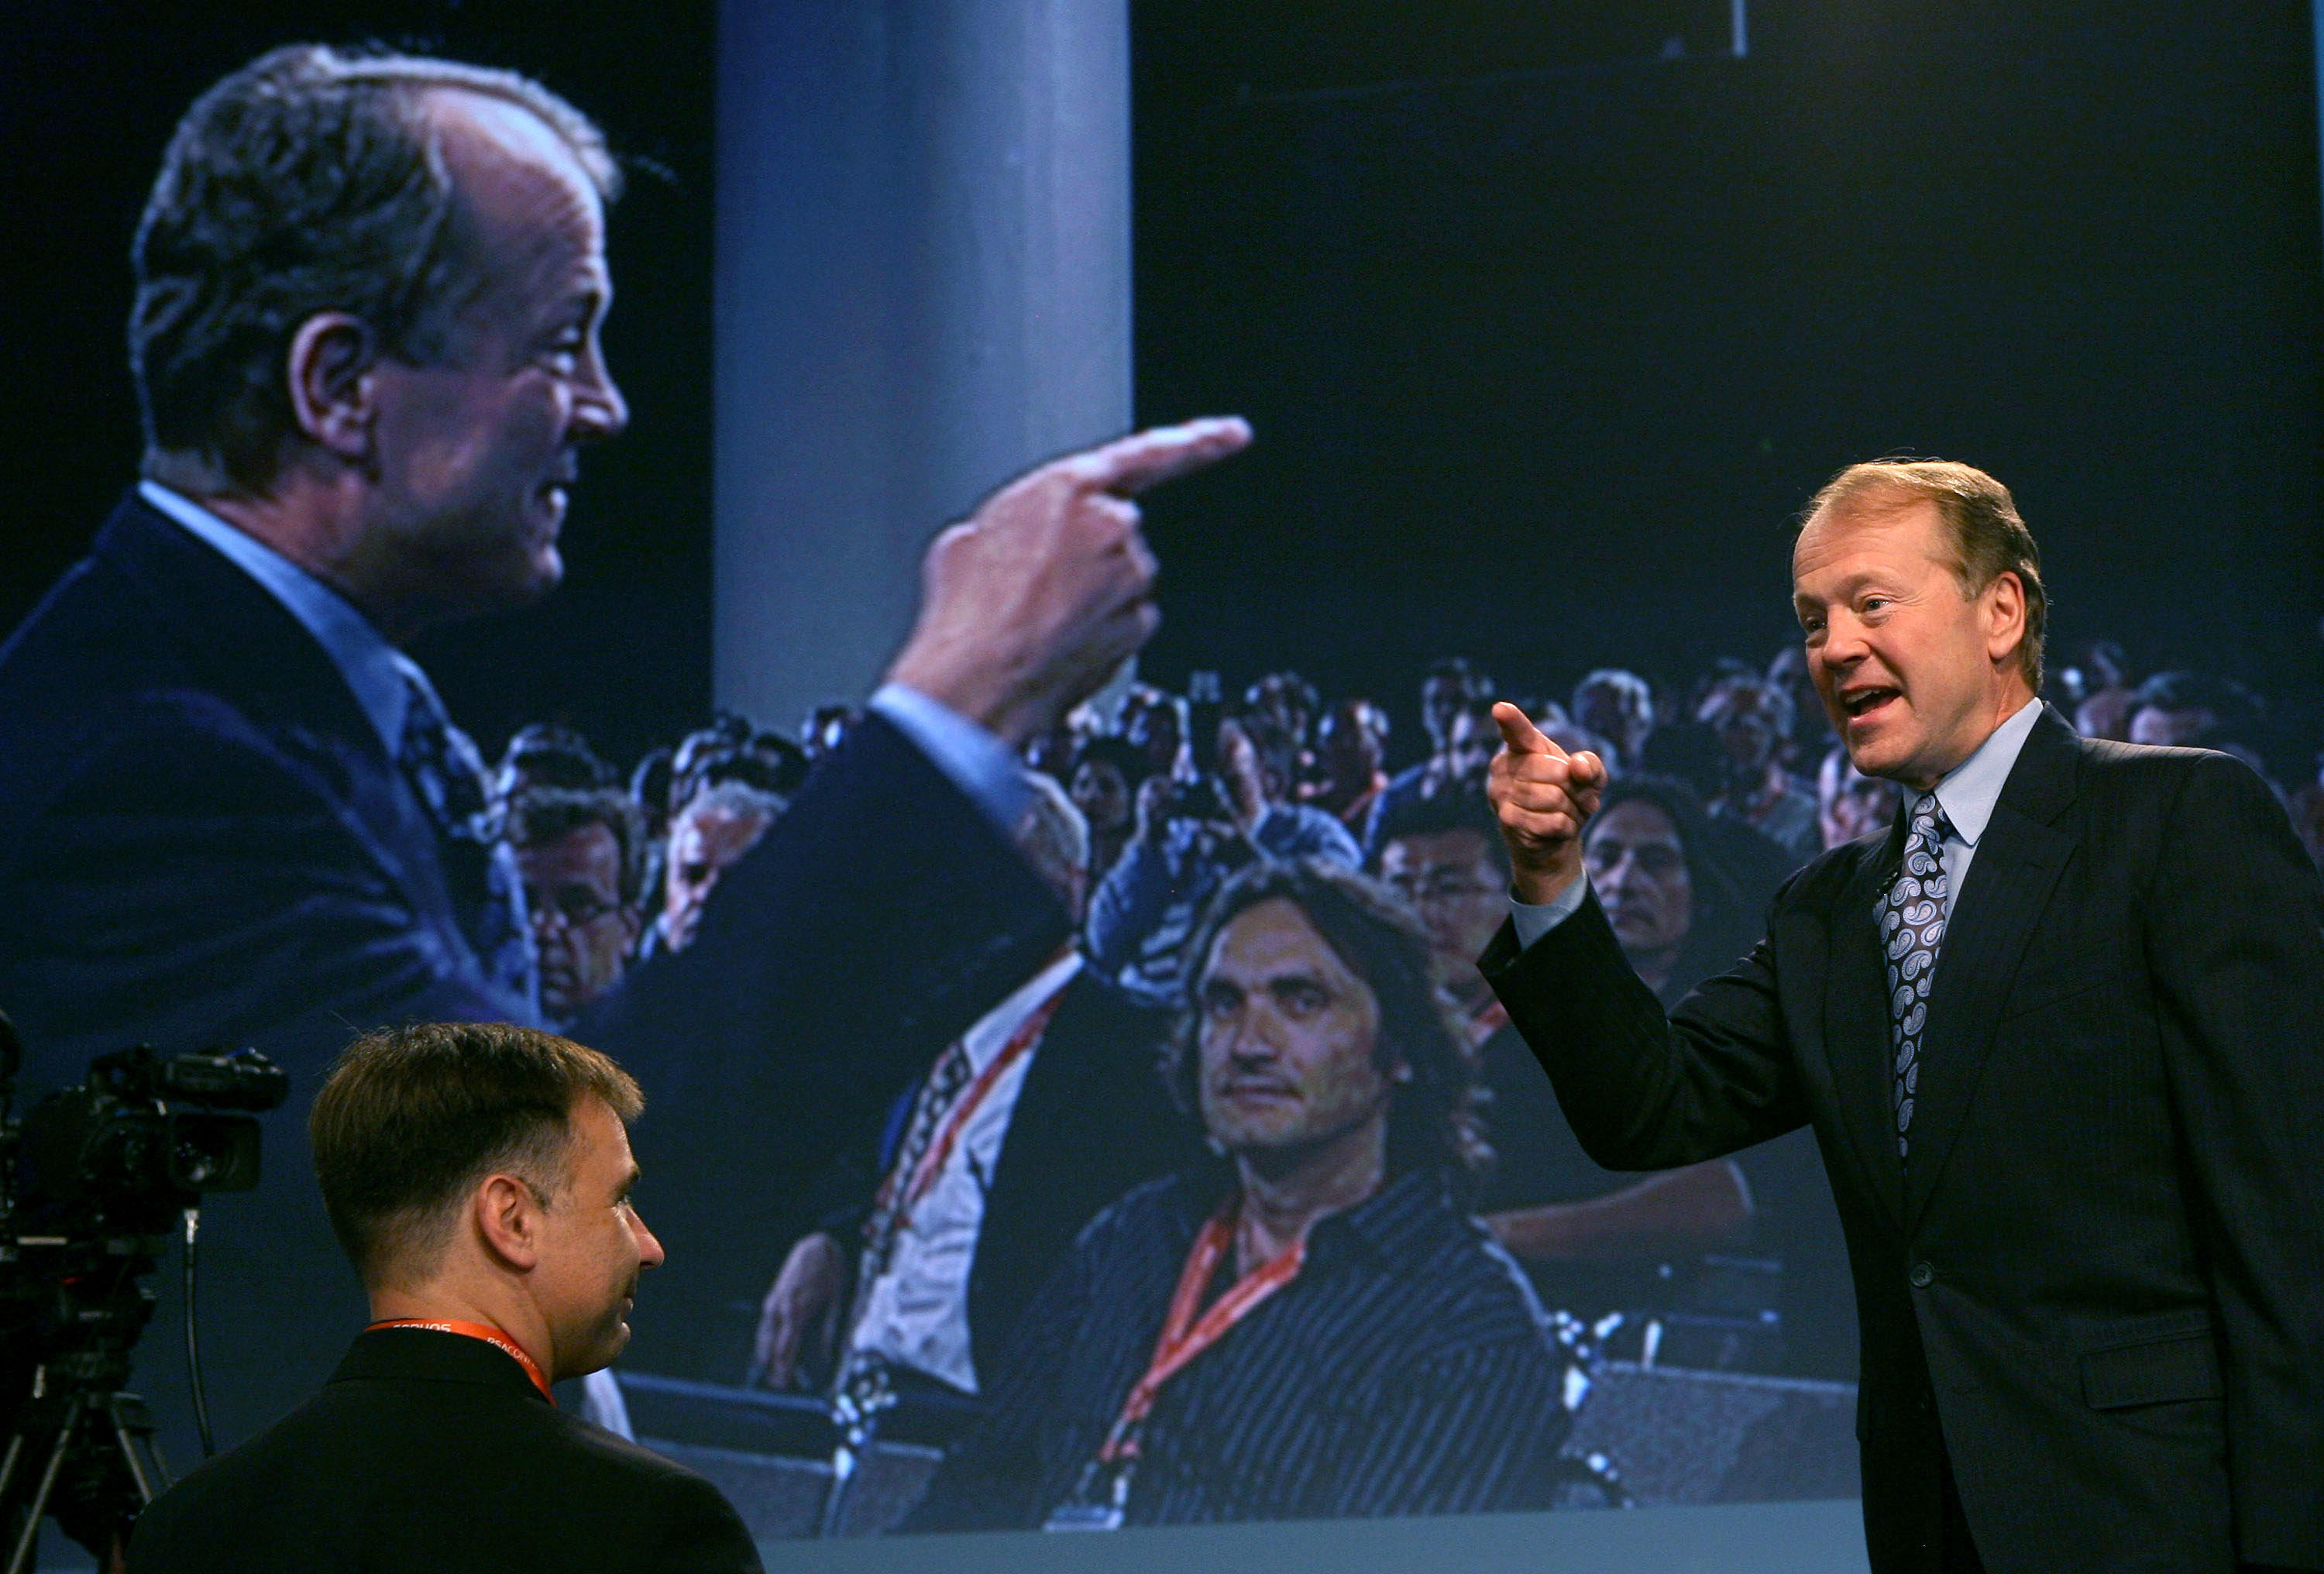 Cisco Chairman and CEO John Chambers delivers a keynote address during the RSA Conference in 2009. Chambers stands to the right, pointing. Behind him, a video screen shows his mirror image pointing back at him. This year, 19 out of 20 keynote speakers will be men.